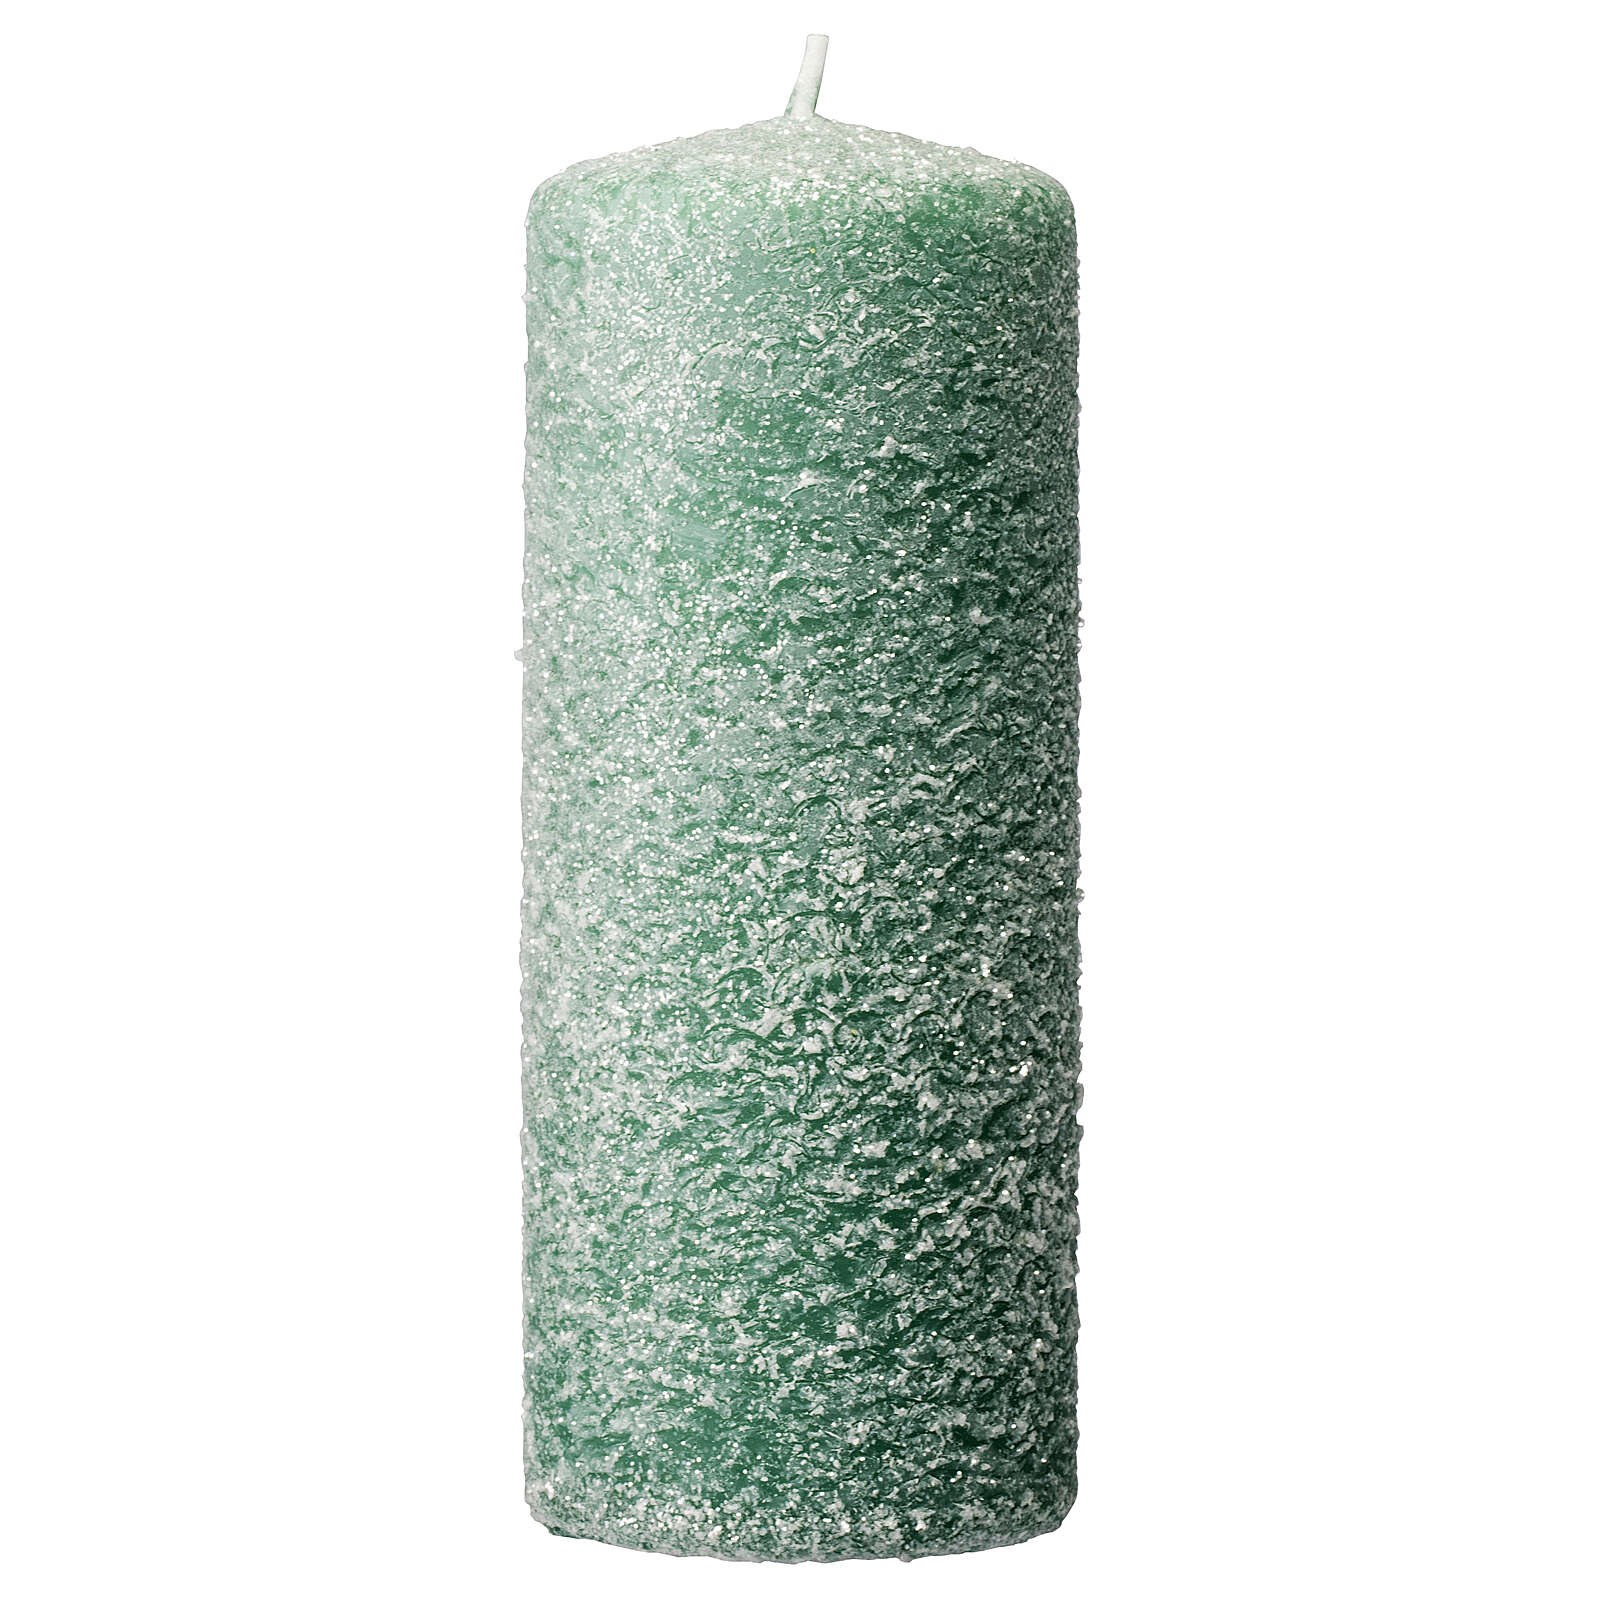 Green candles with snow flakes, Christmas set of 4, 120x50 mm 3